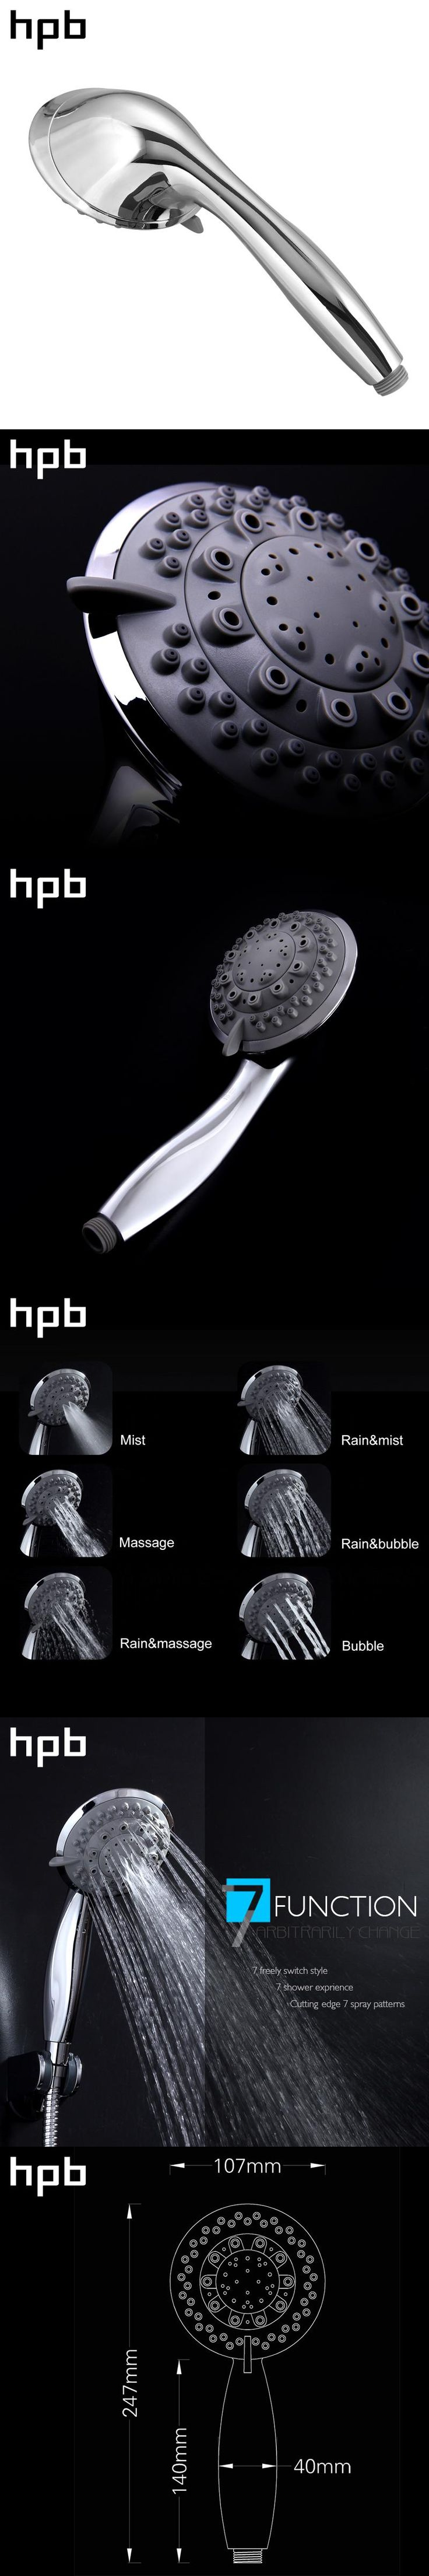 HPB Seven Functions Bathroom Handheld Shower ABS Chrome Finish Water Saving High Pressure Shower Head Round Hand Shower HP7106